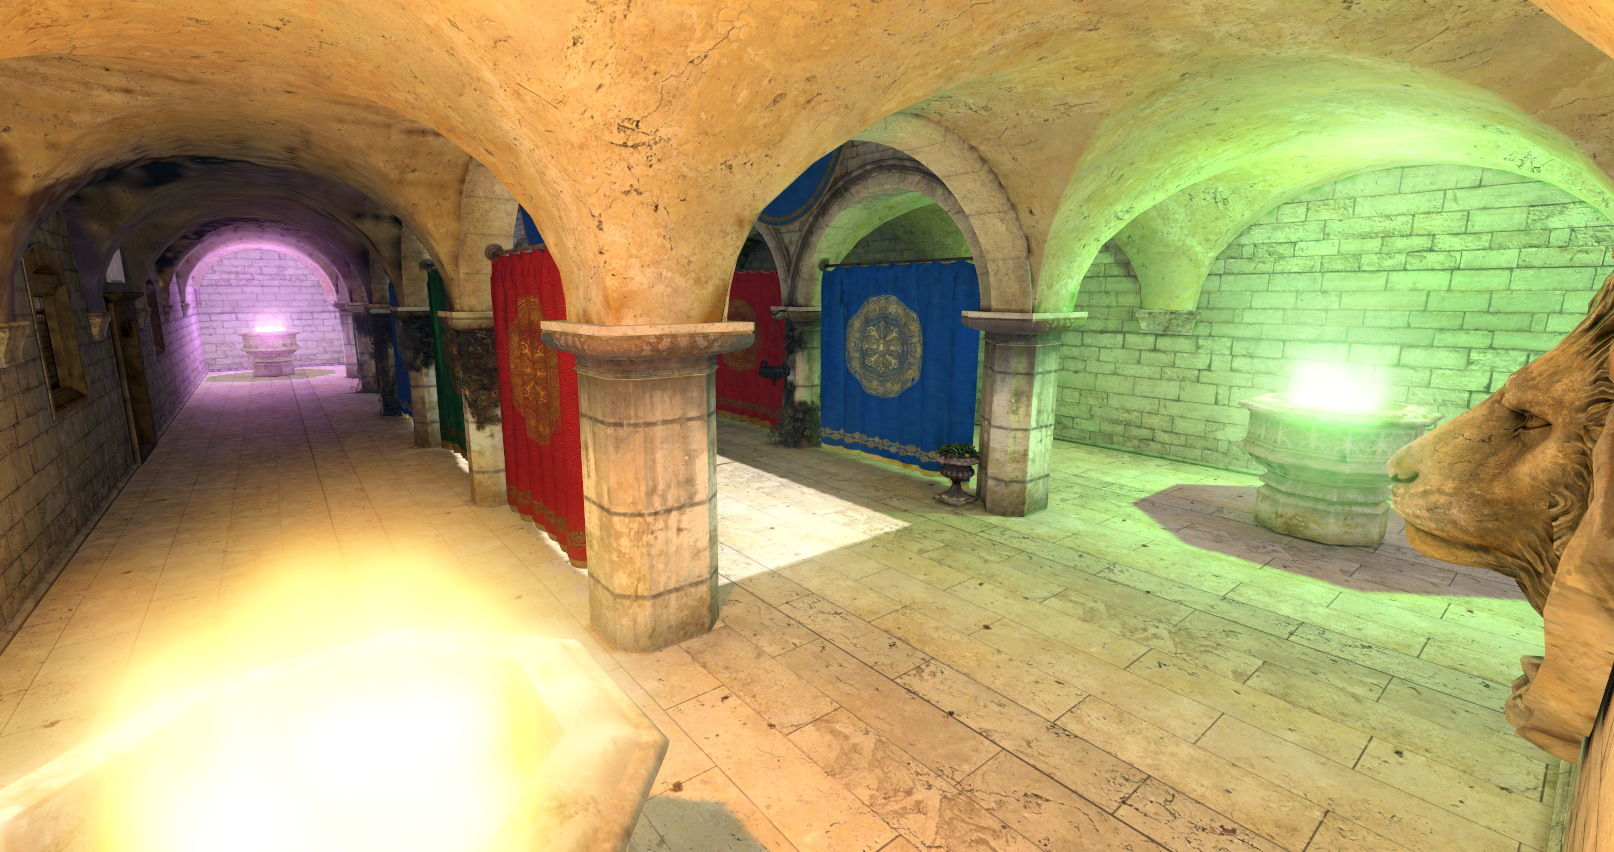 Sponza scene with both direct and indirect lighting